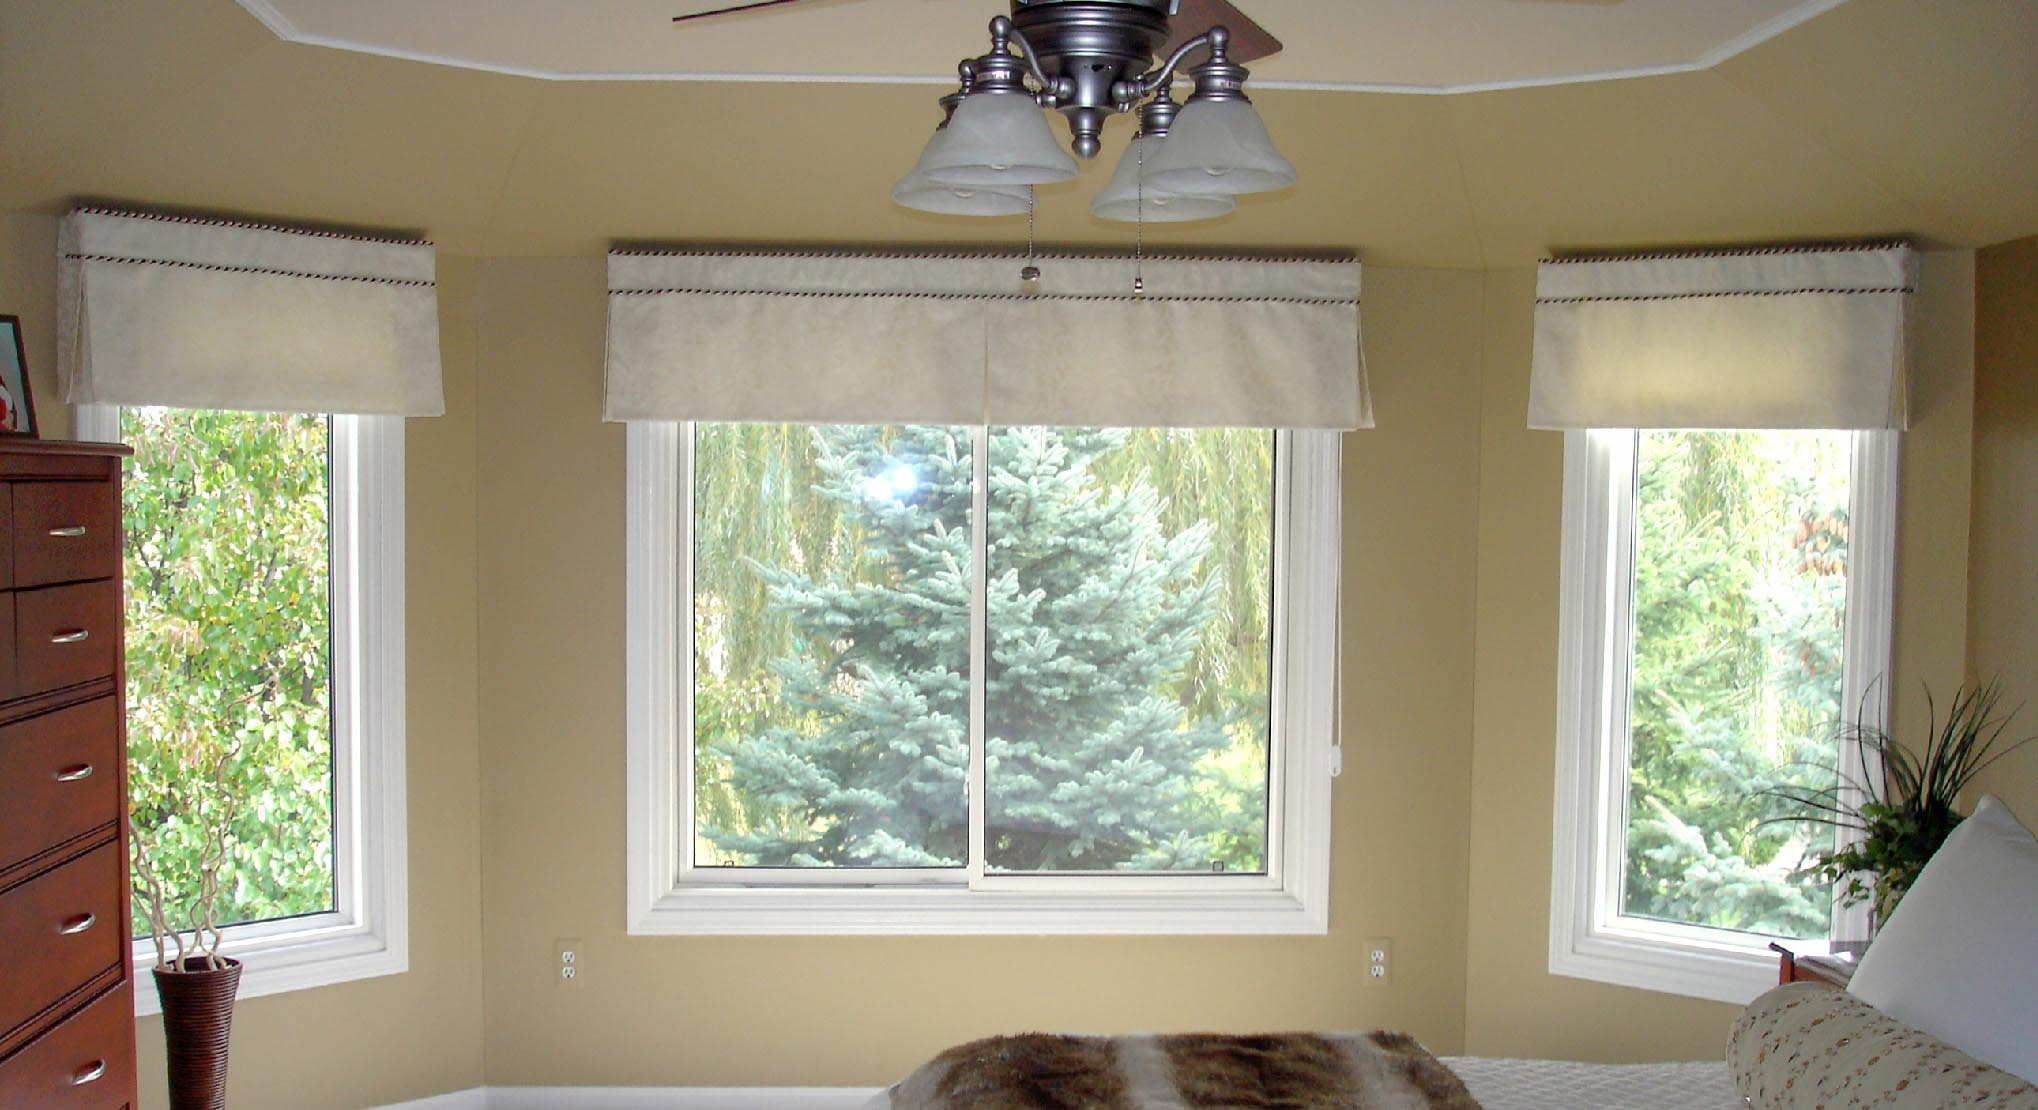 Bedroom valances for windows window treatments design ideas for Window treatments bedroom ideas